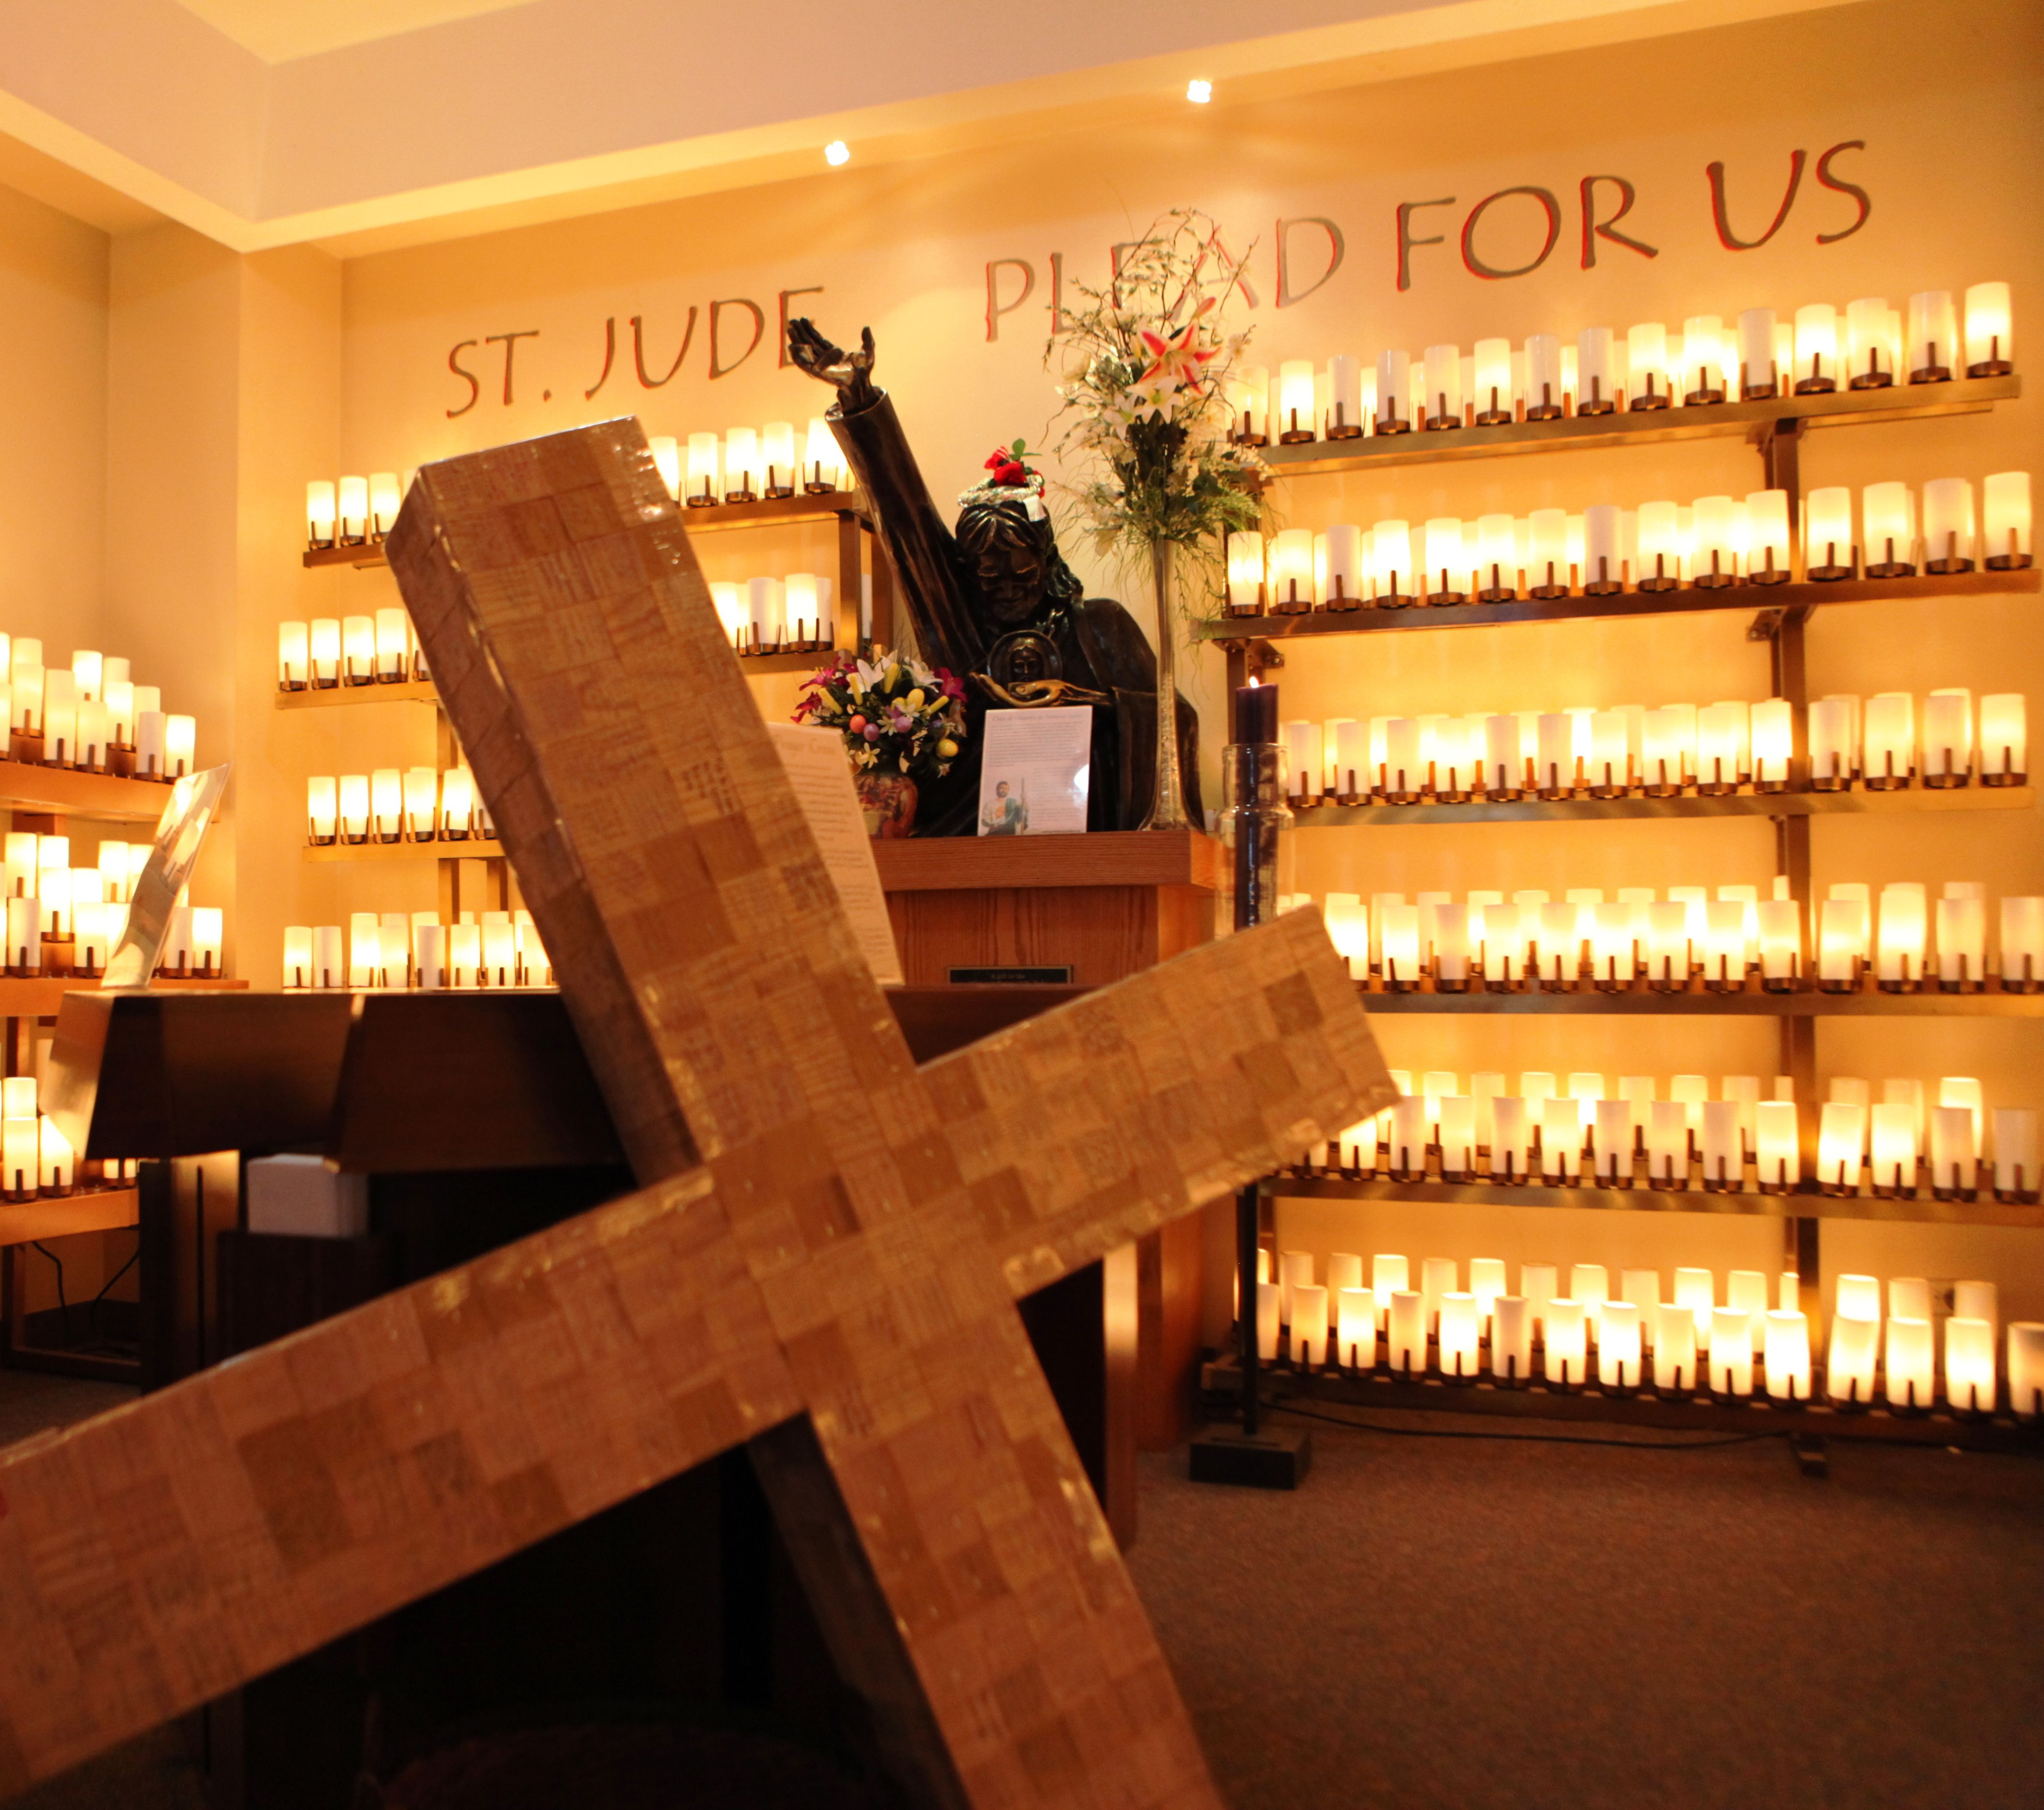 In the coming days, we will begin preparations for Holy Week at the National Shrine of St. Jude. It is not too late to send your prayers and petitions to the National Shrine for our special wooden prayer cross. When you do, your petitions will be represented by a small wooden tile that will be combined with others to create a large prayer cross.